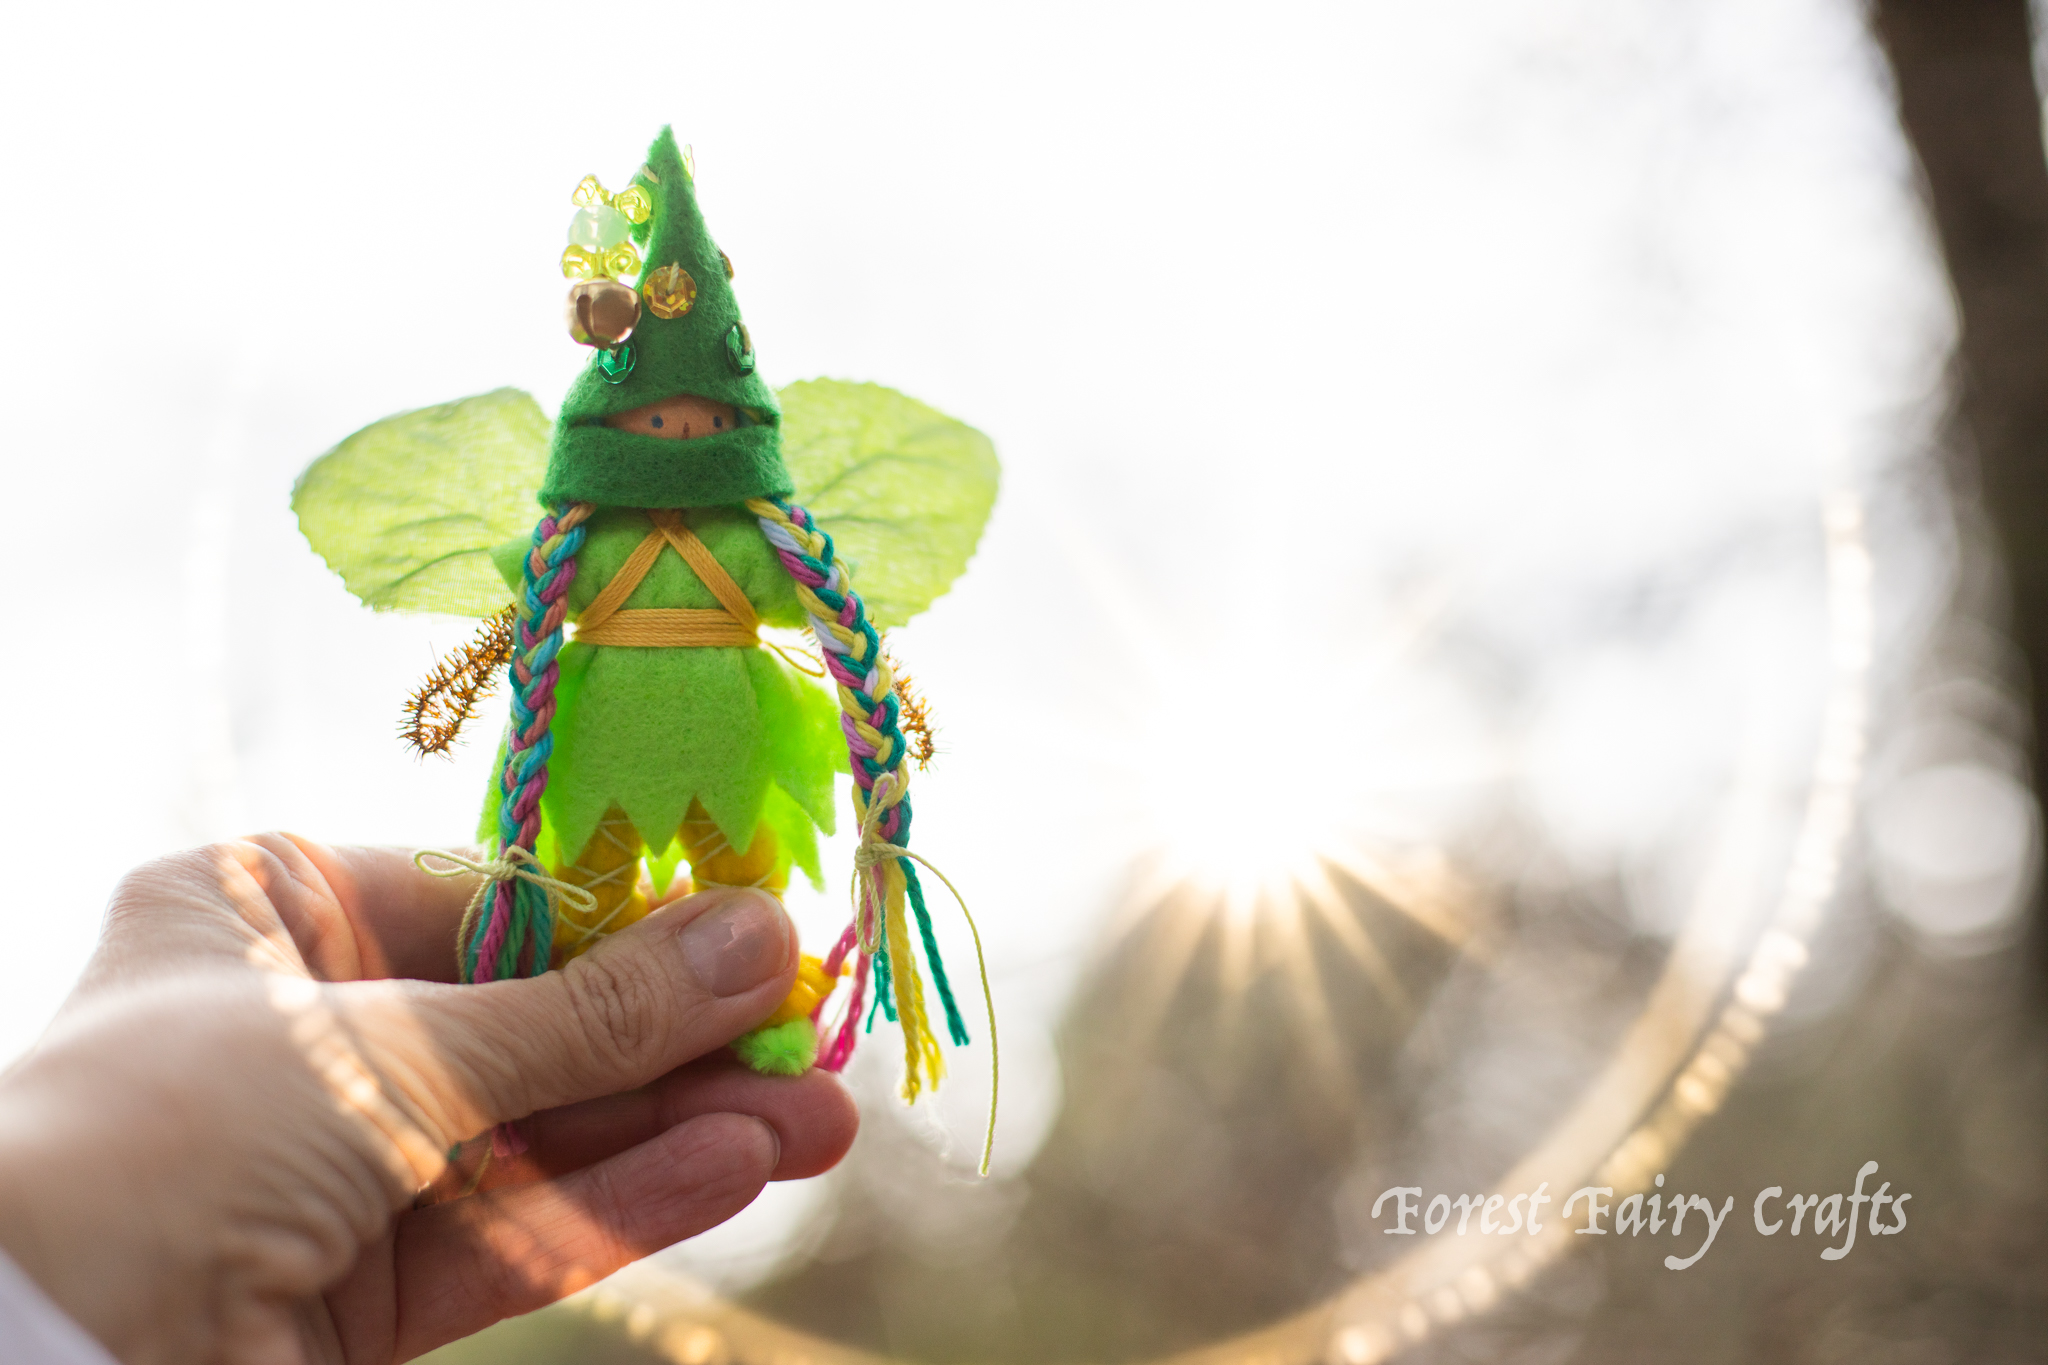 Leprechaun Ninja from Forest Fairy Crafts by Lenka Vodicka-Paredes and Asia Currie